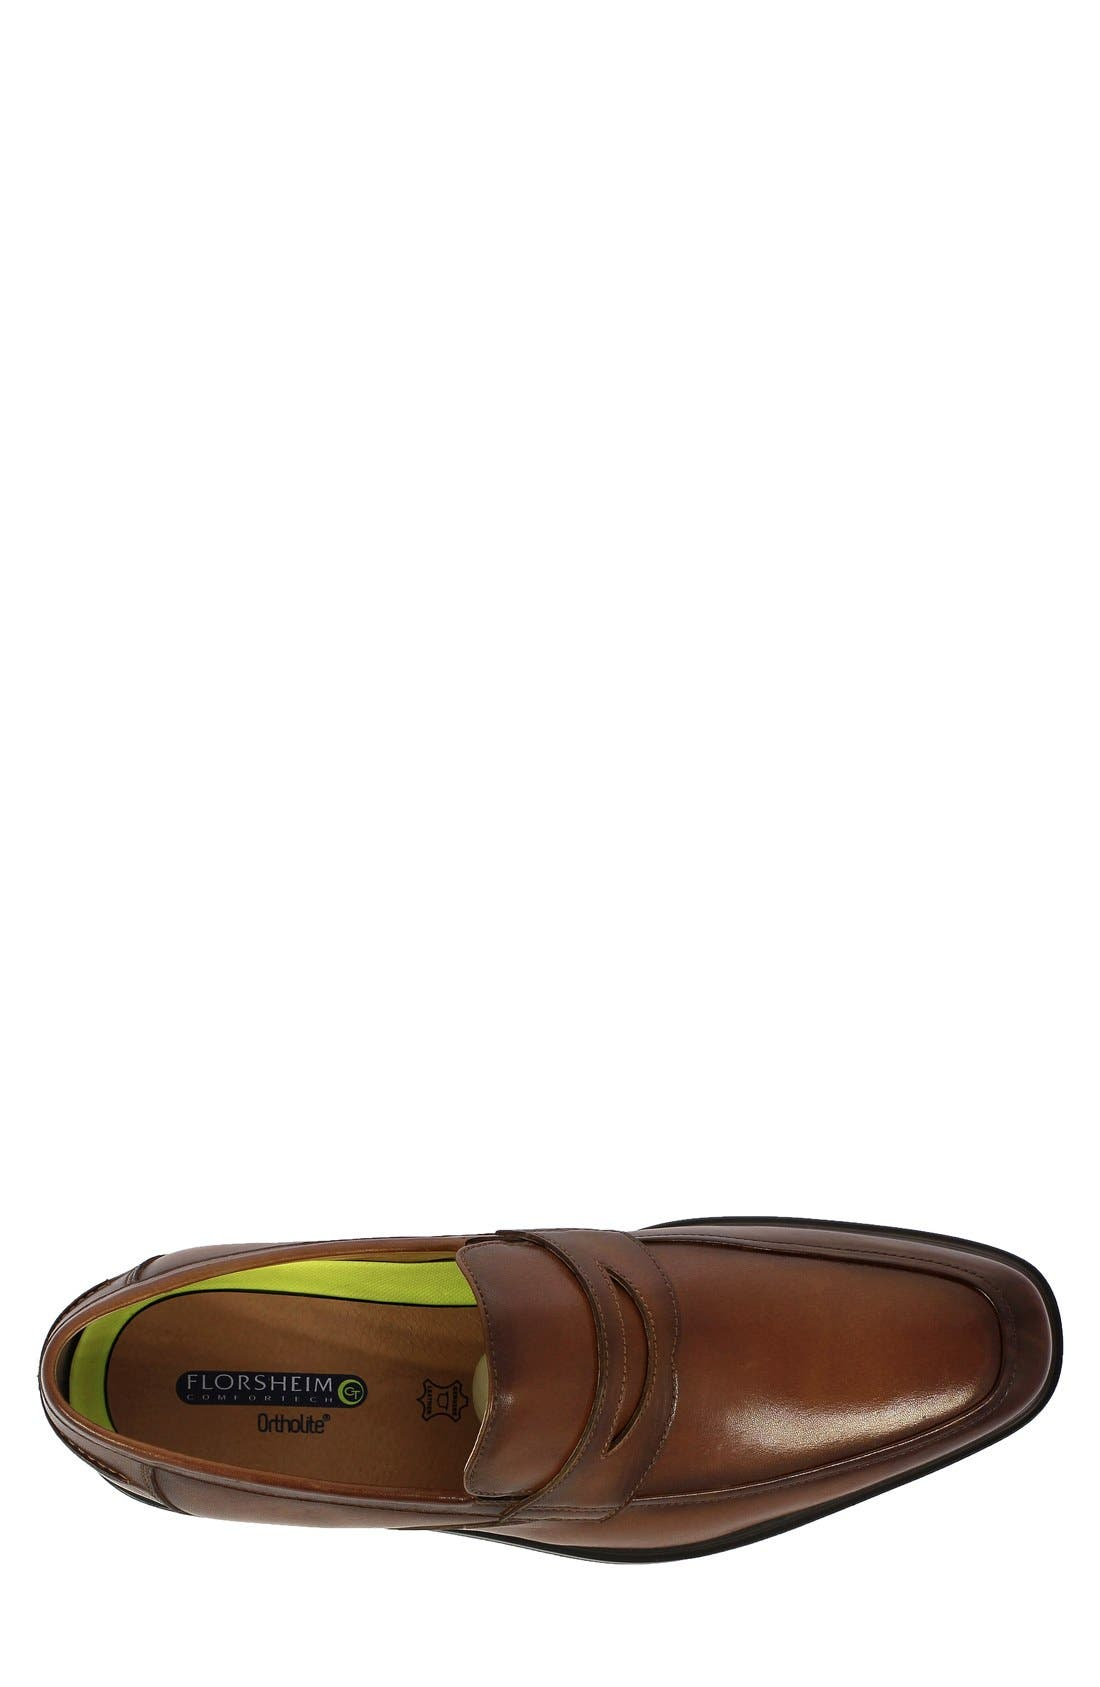 'Heights' Penny Loafer,                             Alternate thumbnail 3, color,                             COGNAC LEATHER